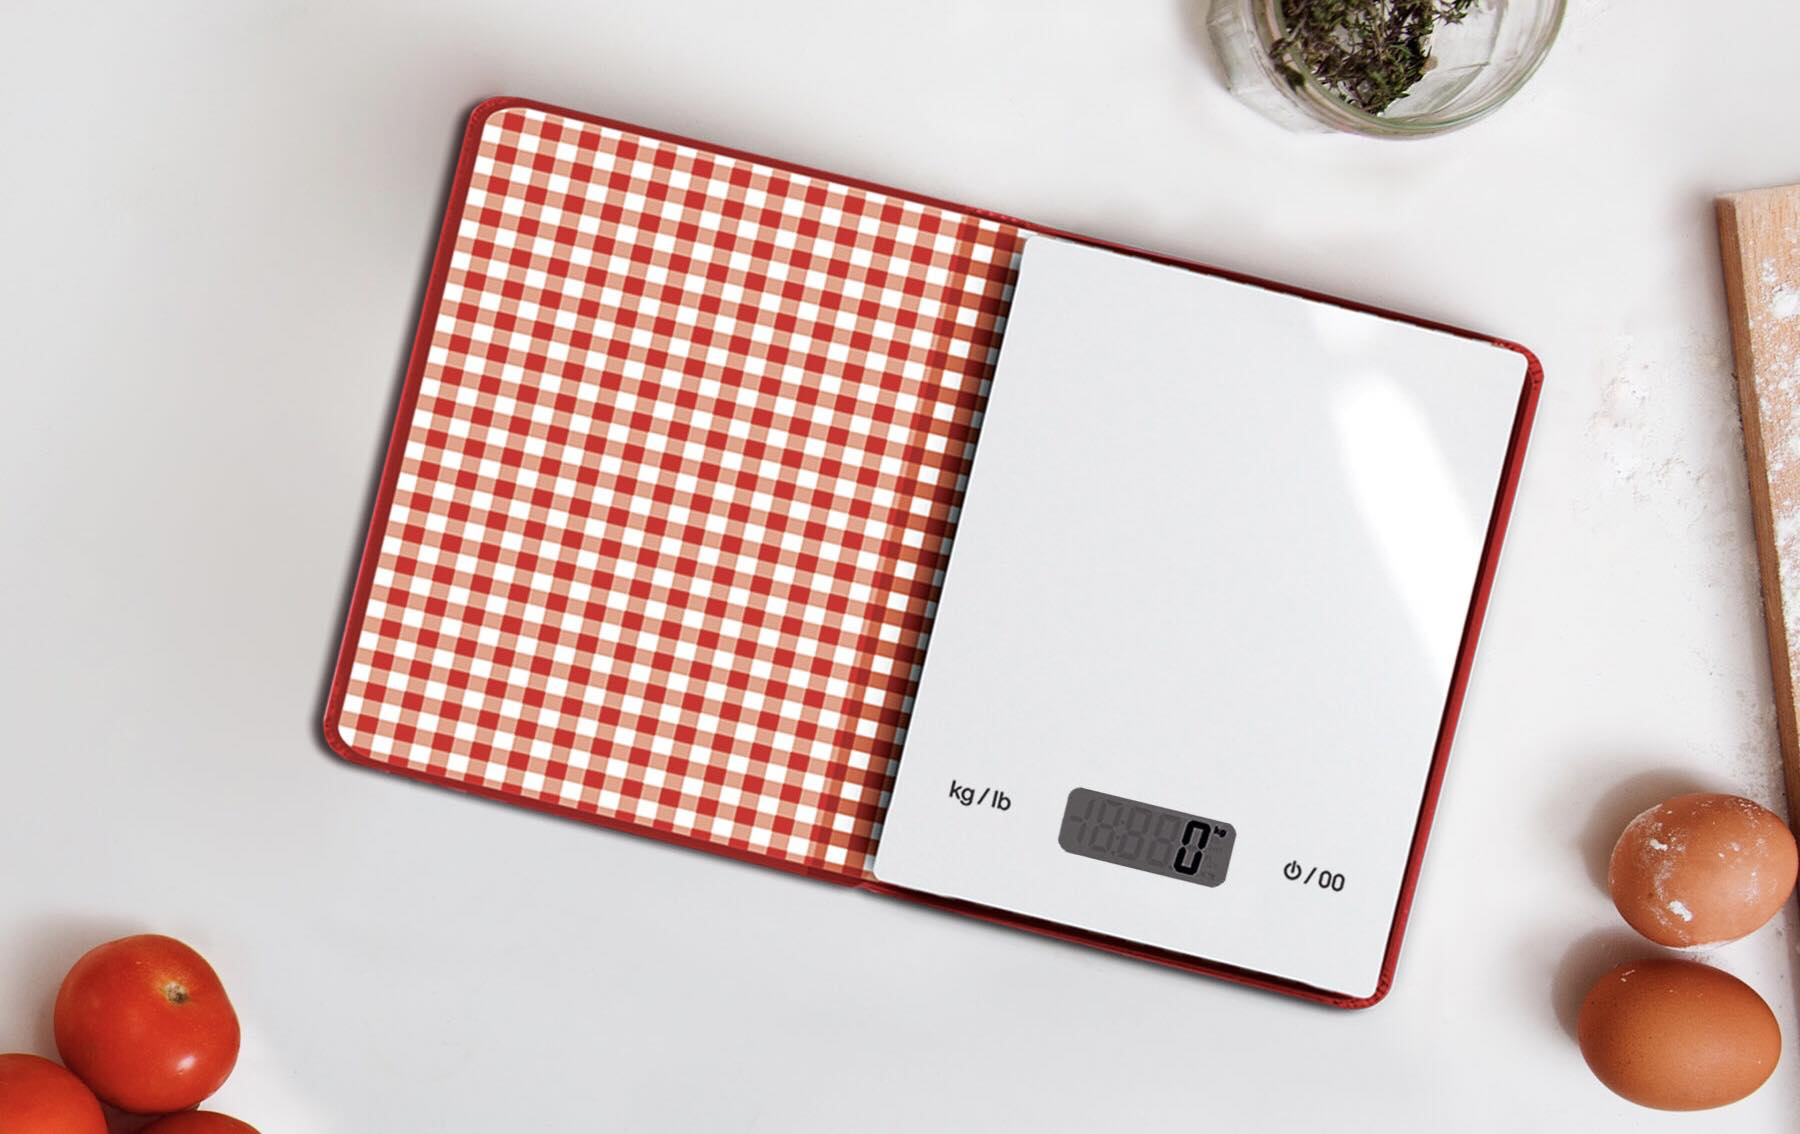 cooks-book-kitchen-scales